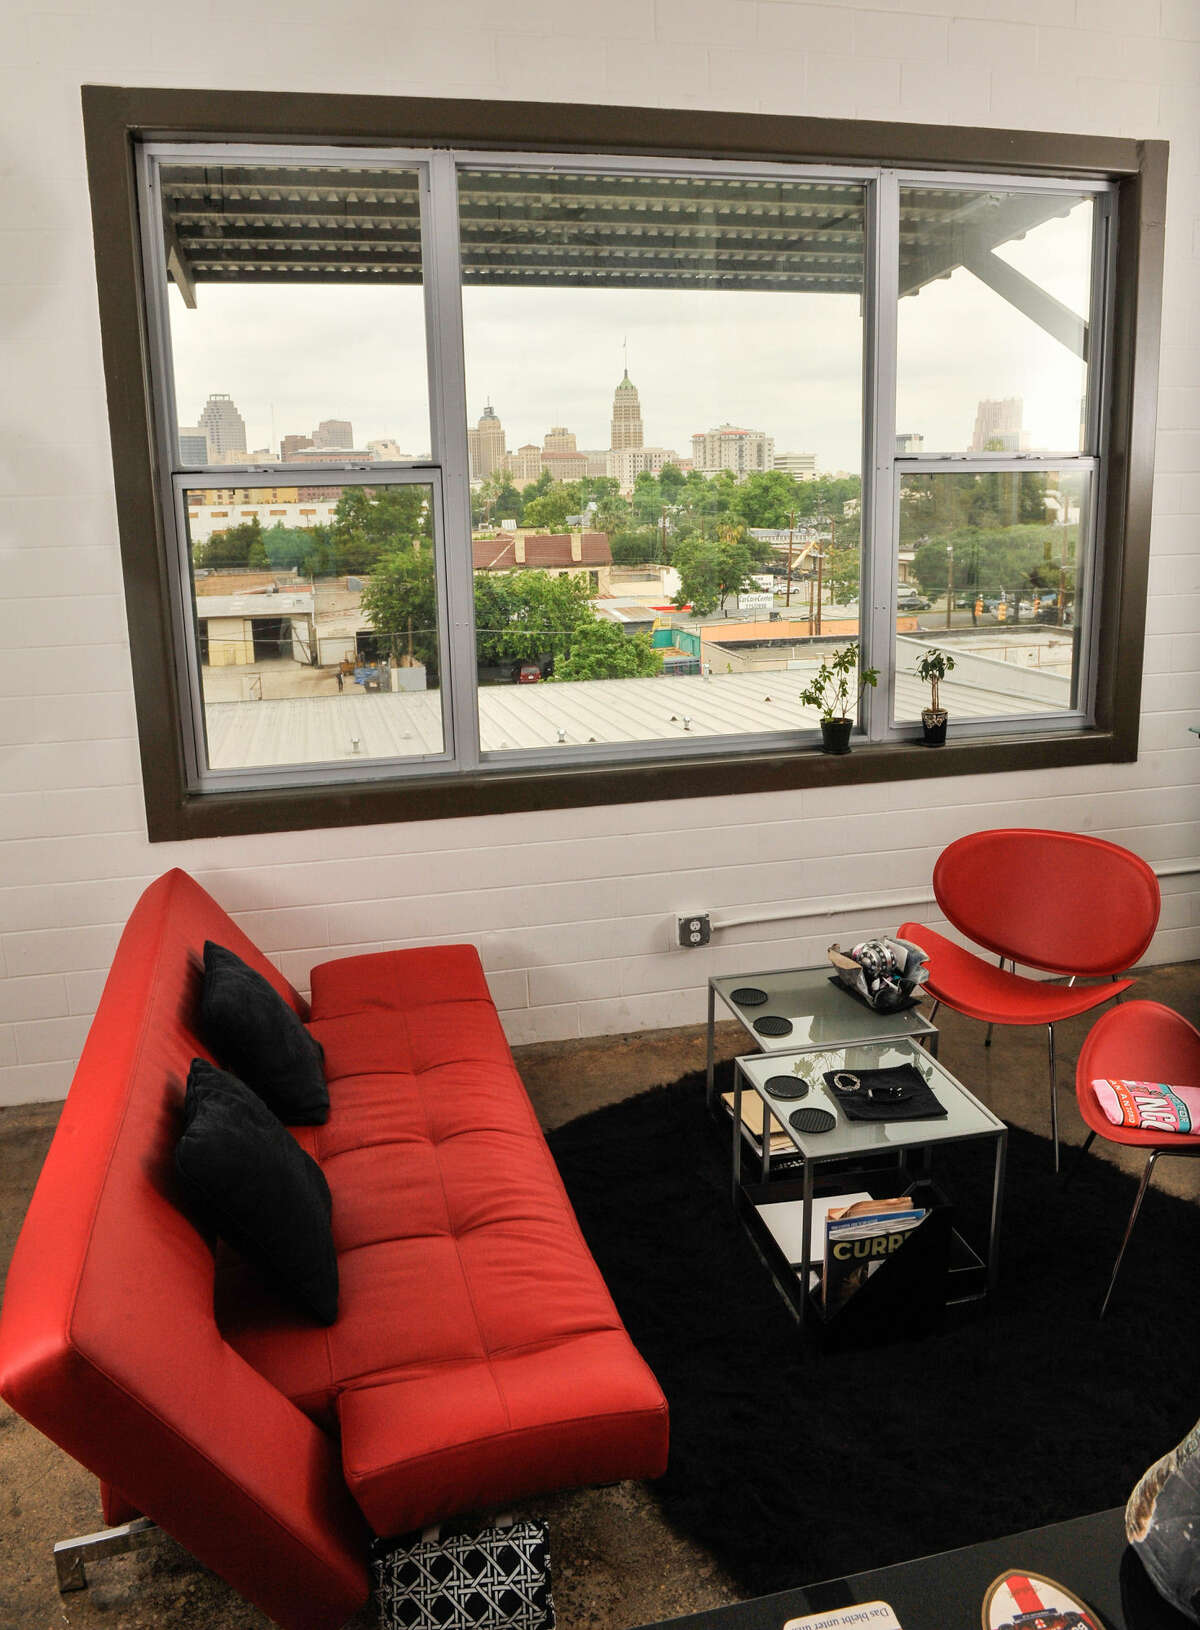 A bright red couch is featured next to a picture window with a downtown view.